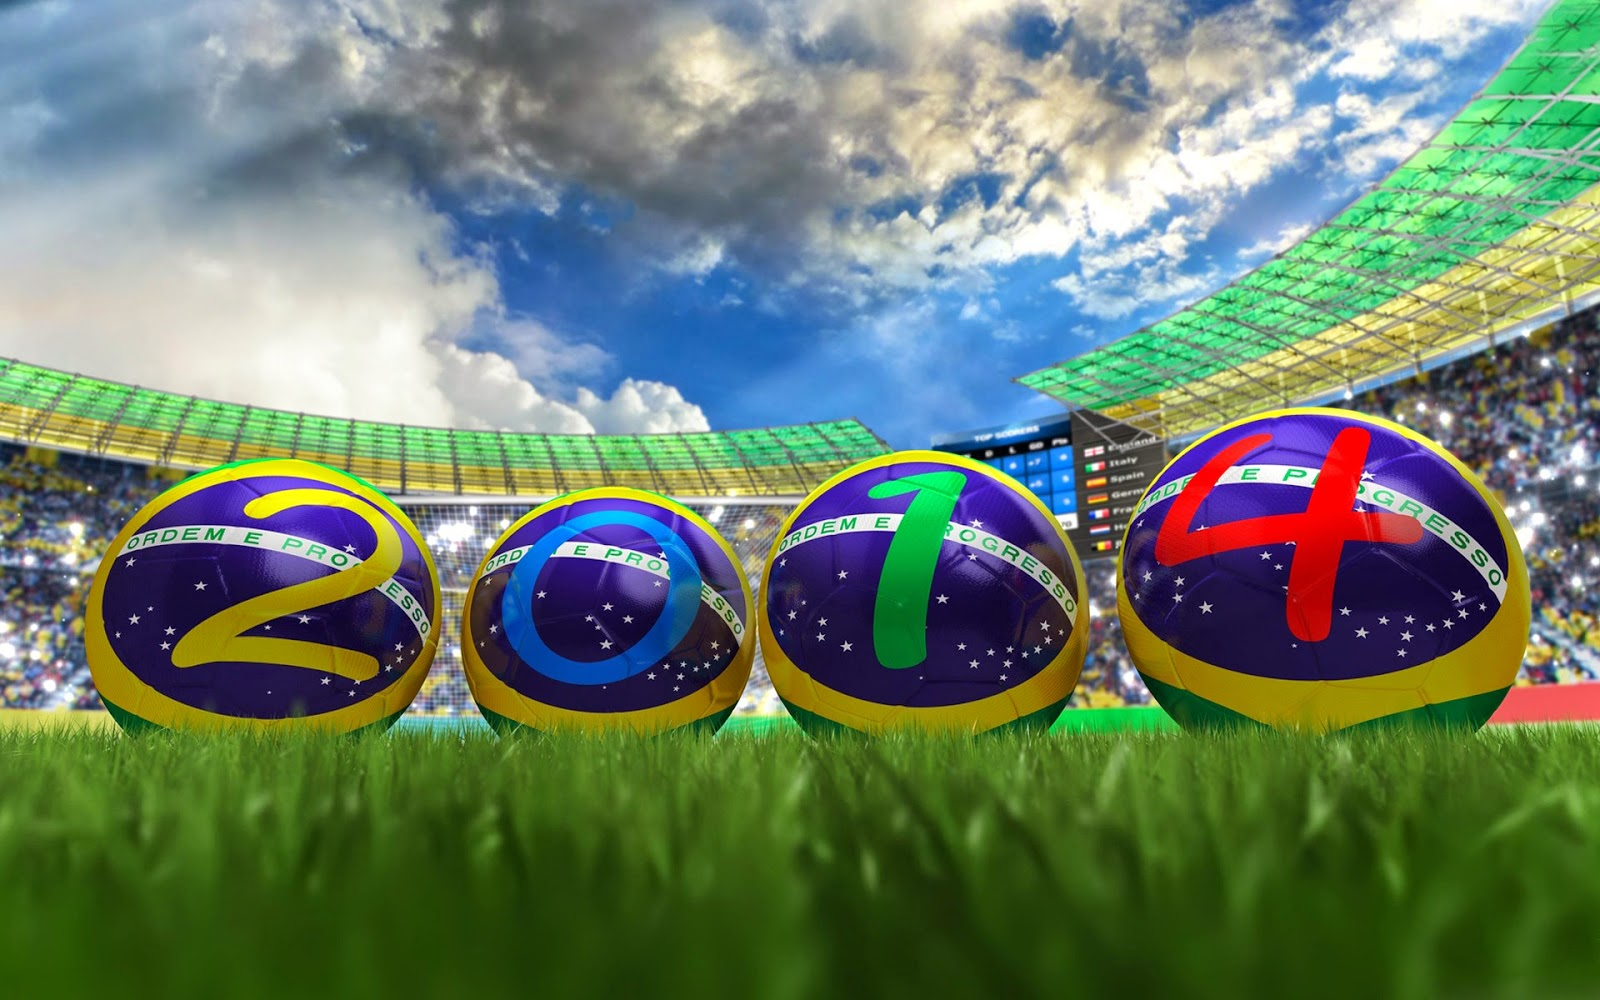 FIFA World Cup Brazil 2014 pictures